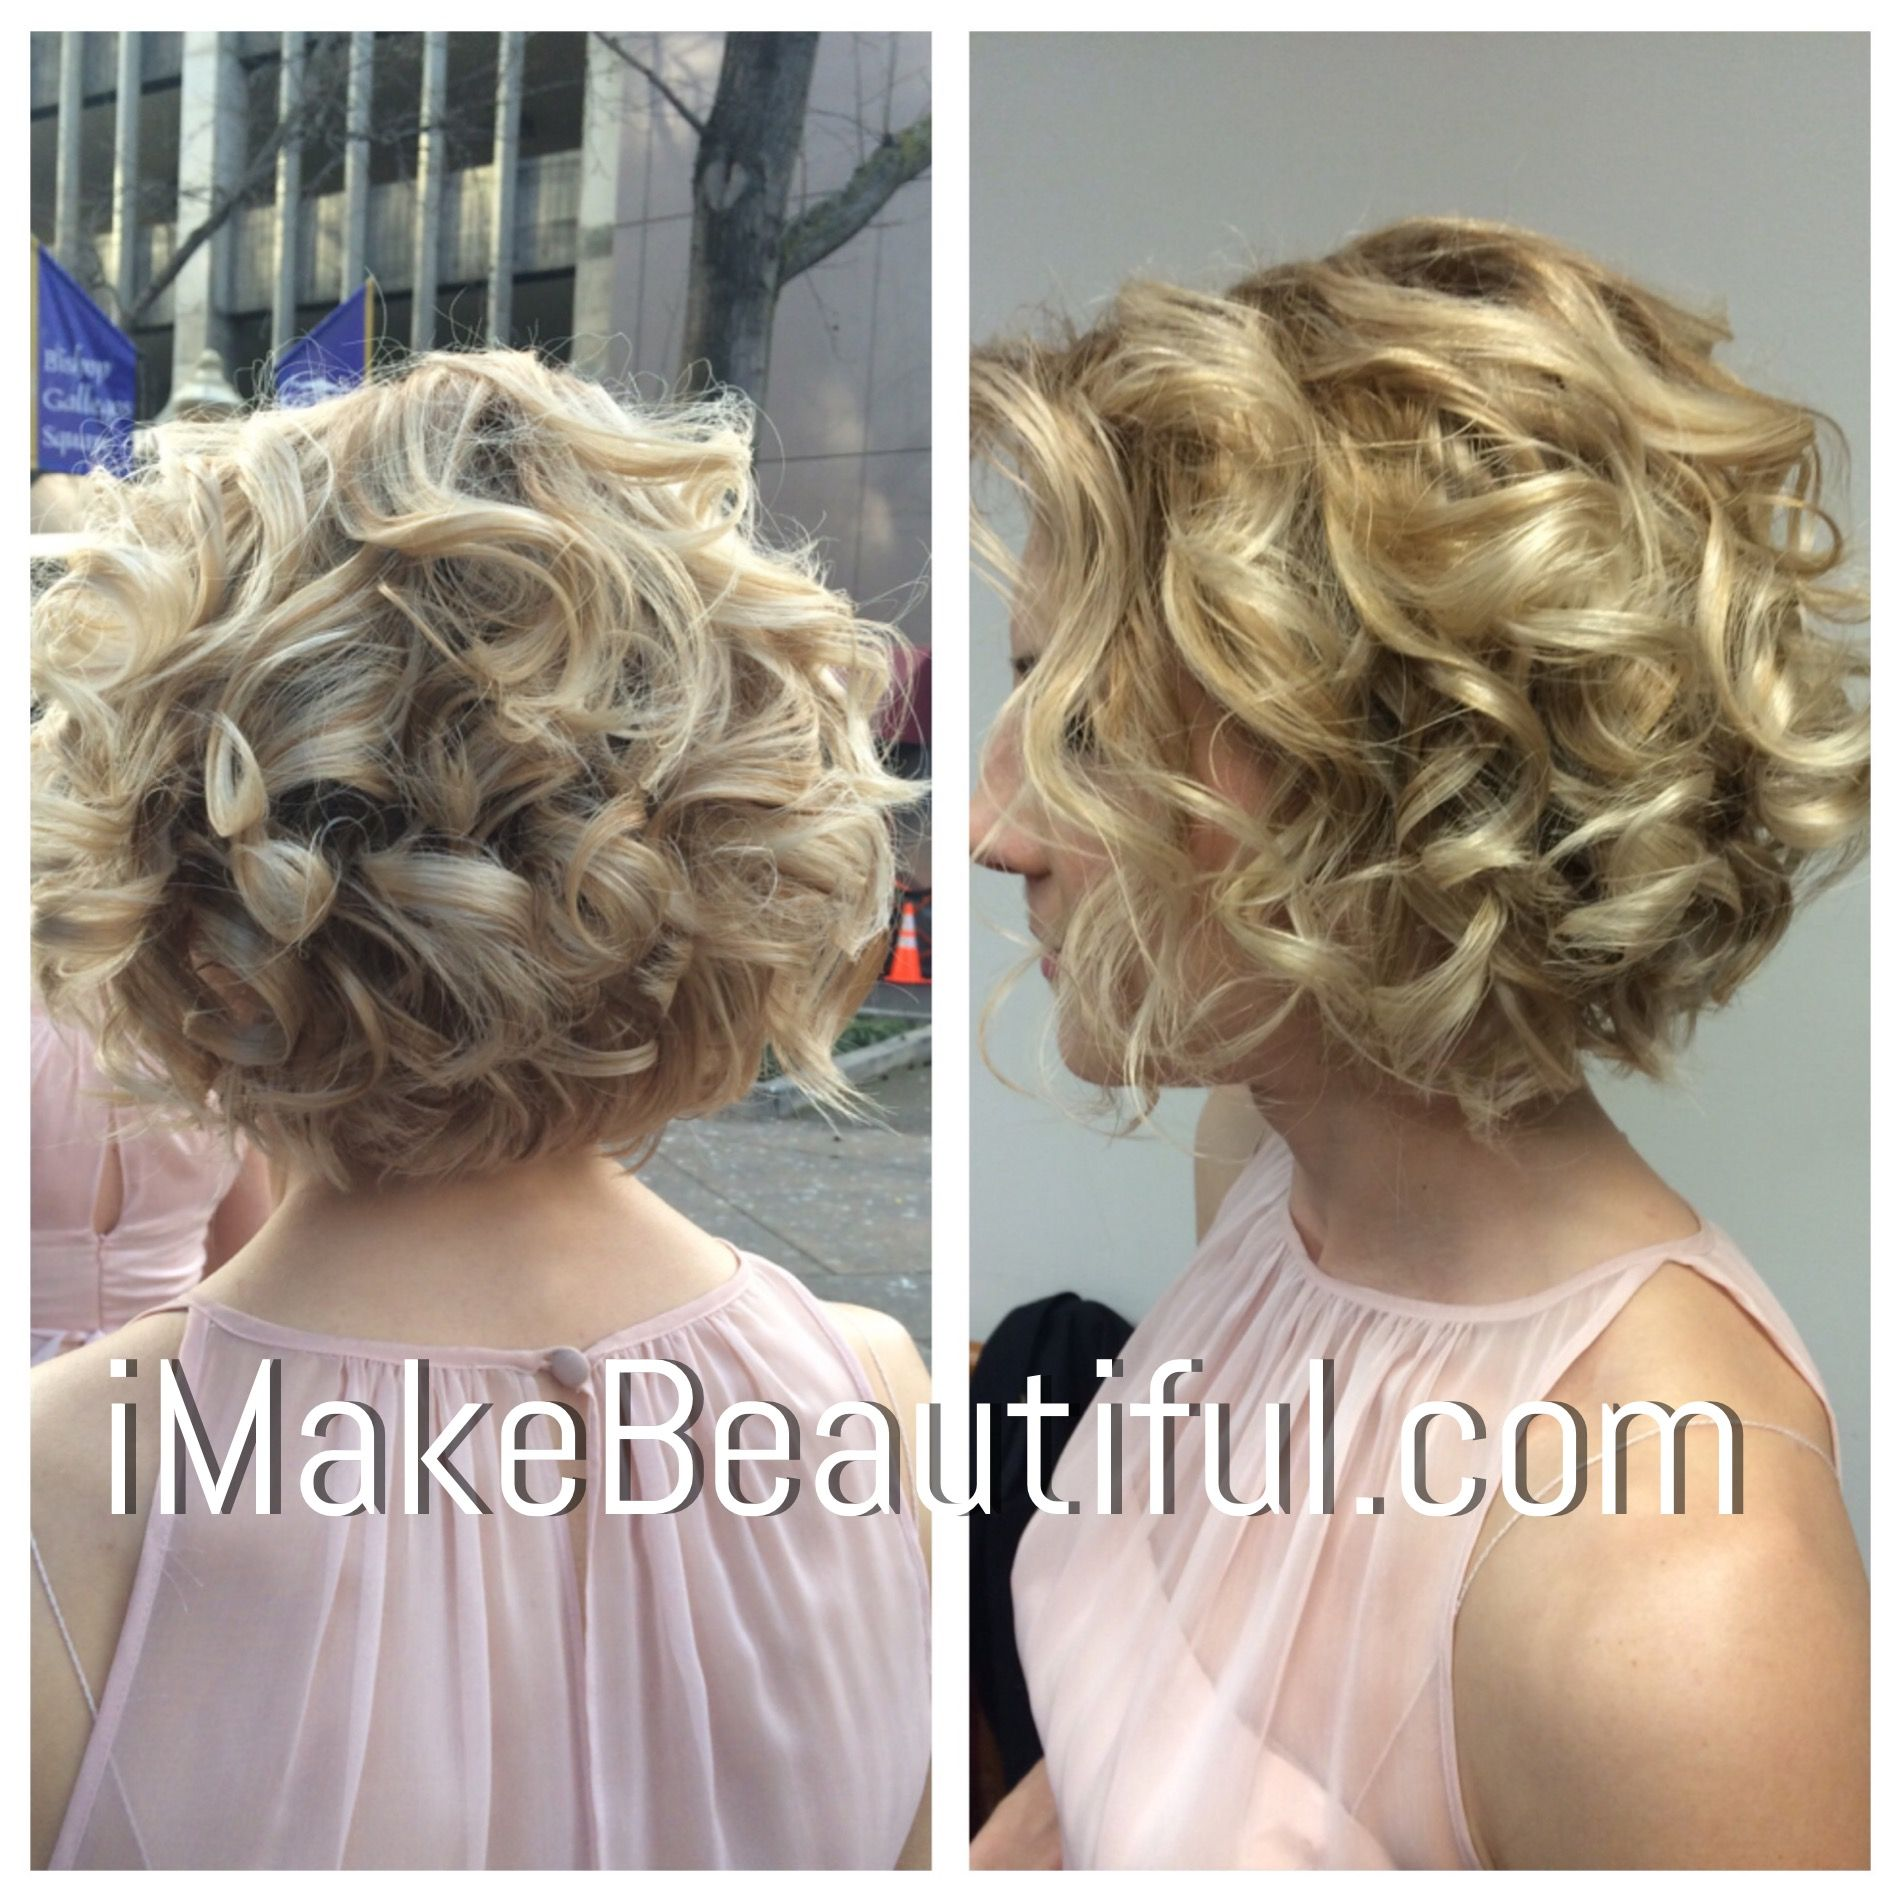 Bridal Hair For Short Hair My Style Peinados Poco Cabello